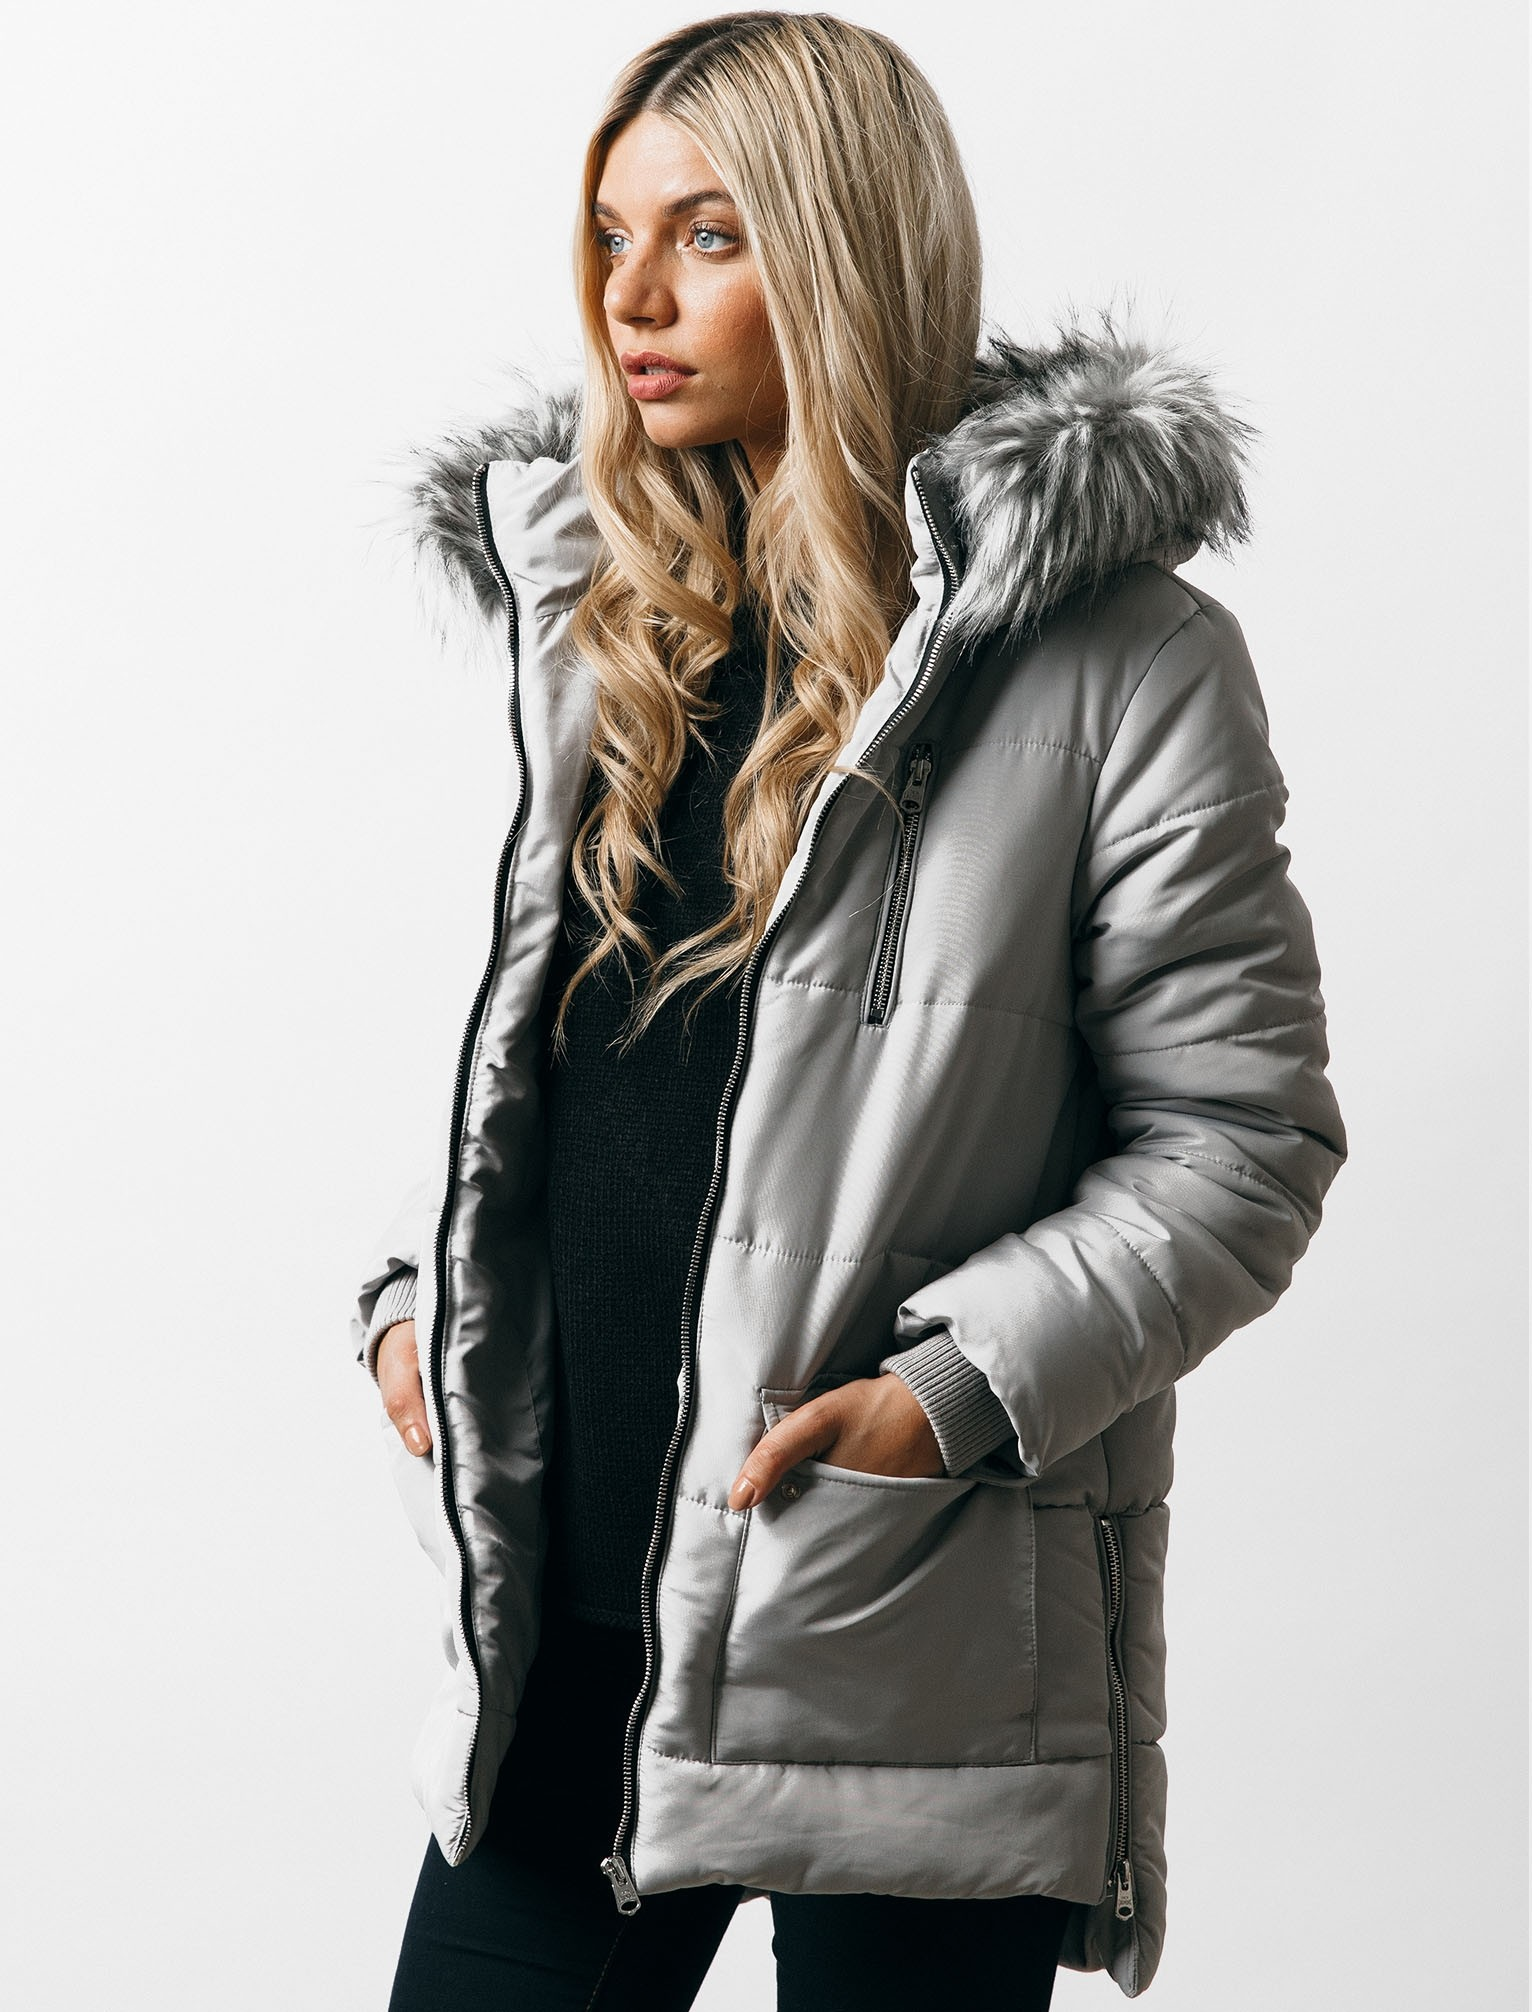 womens parka coats with fur hood oqena quilted parka coat with detachable fur trim hood in silver sconce - OEMUILJ